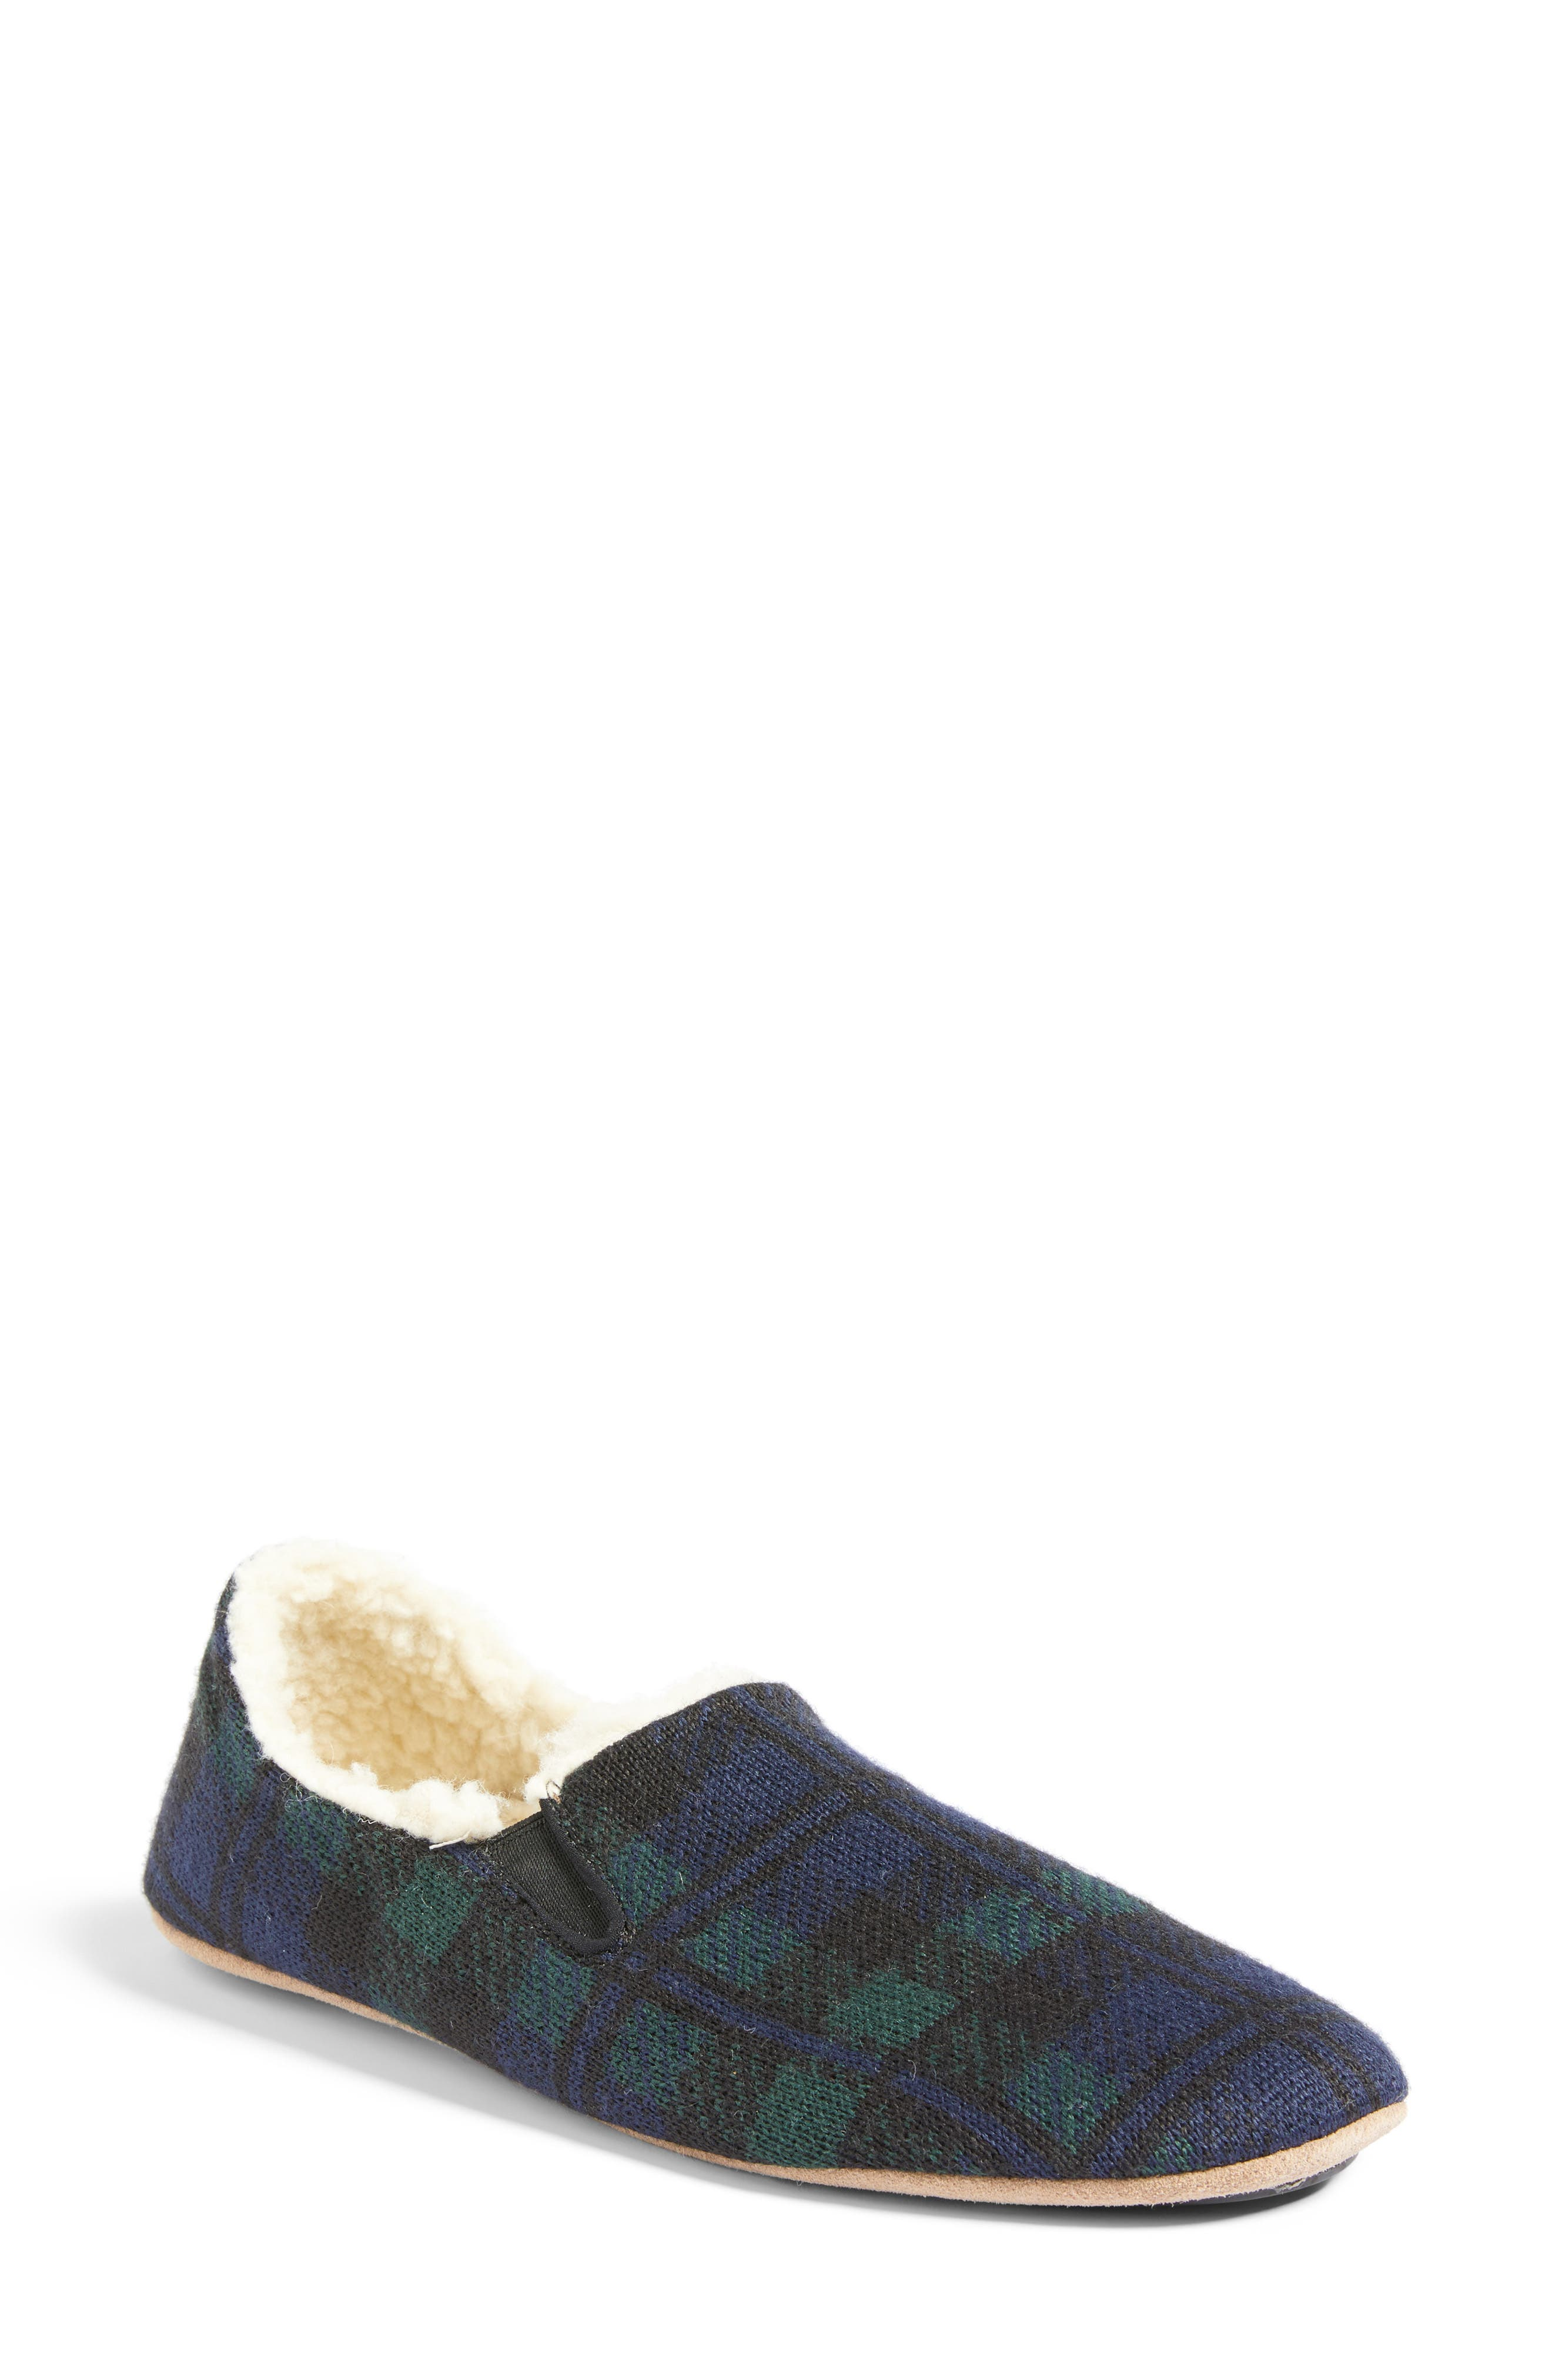 Black Watch Plaid Nomad Slippers,                         Main,                         color, Navy